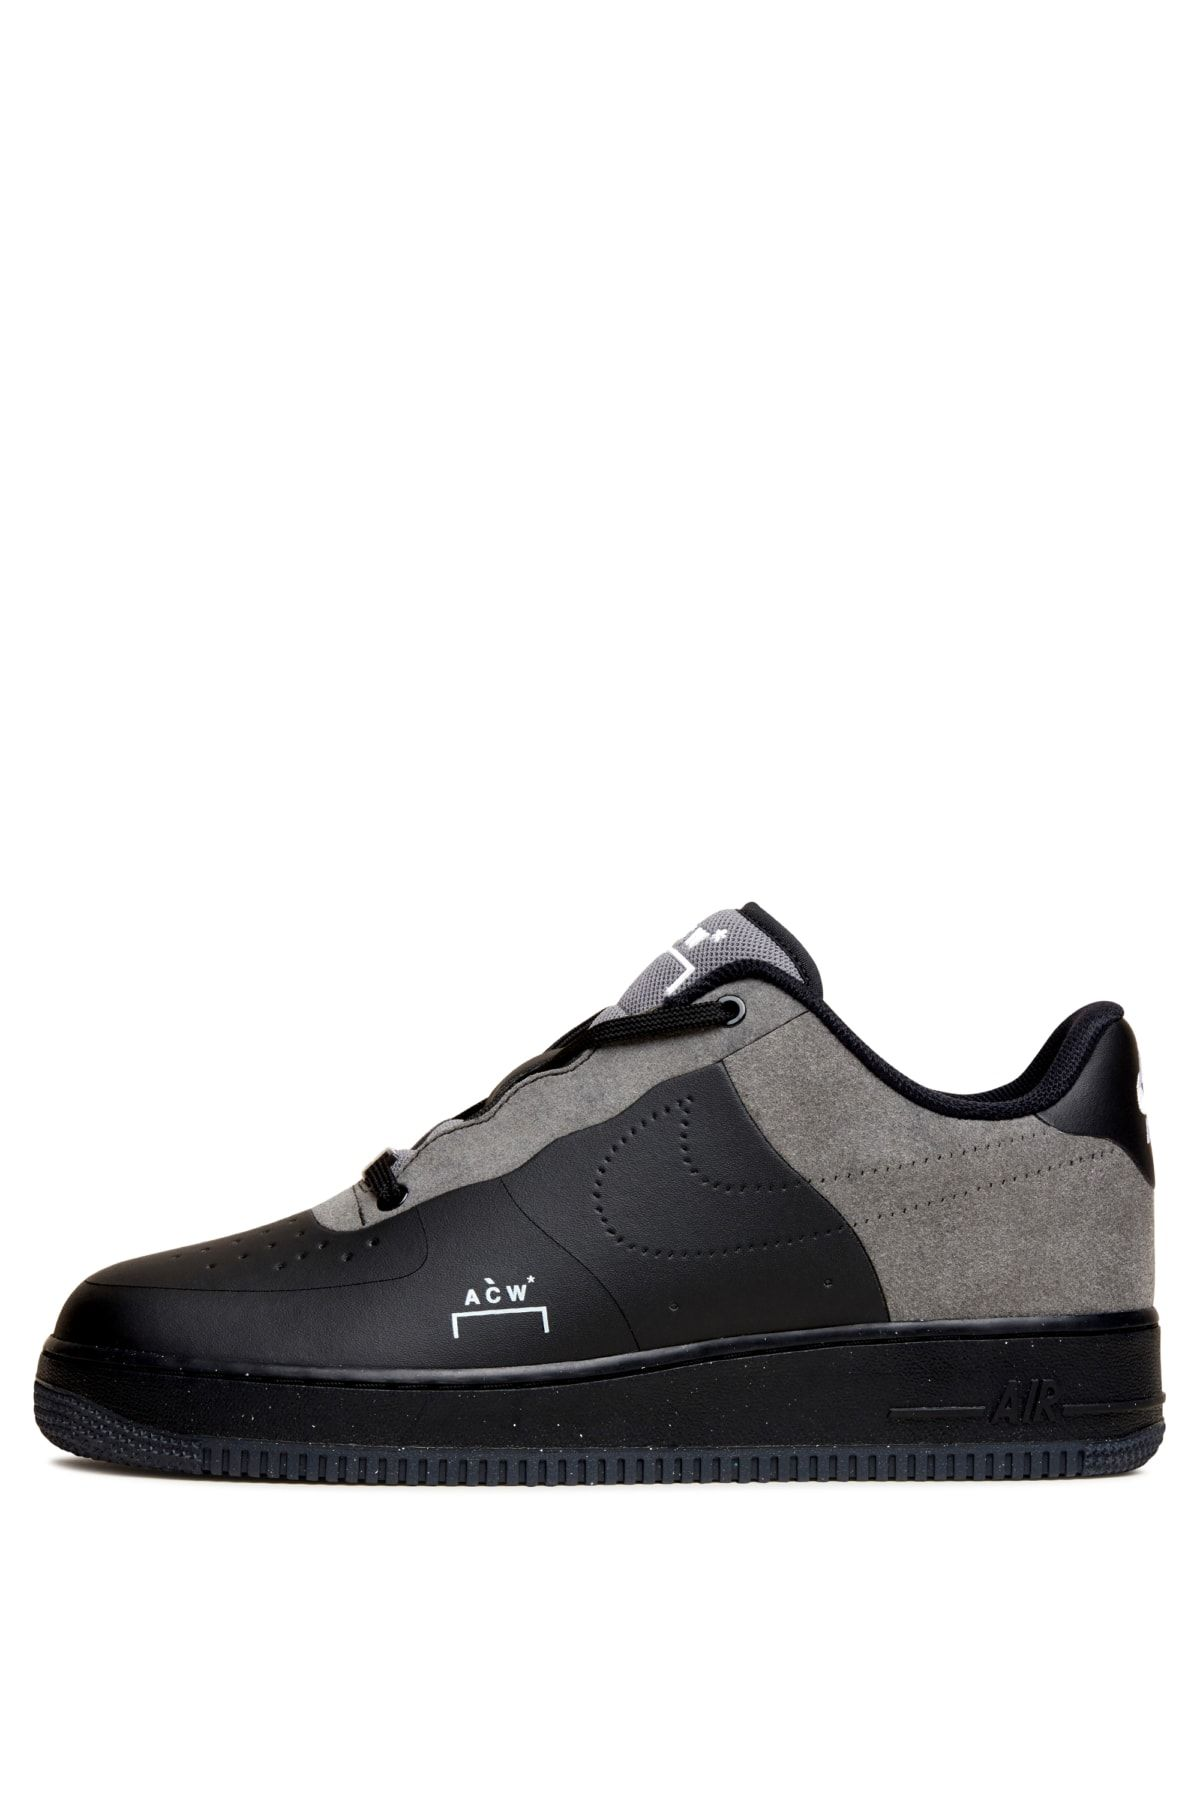 new concept 1b9f0 1ed1b Nike x ACW Air Force 1 - Jet BlackFlyleather - A-COLD